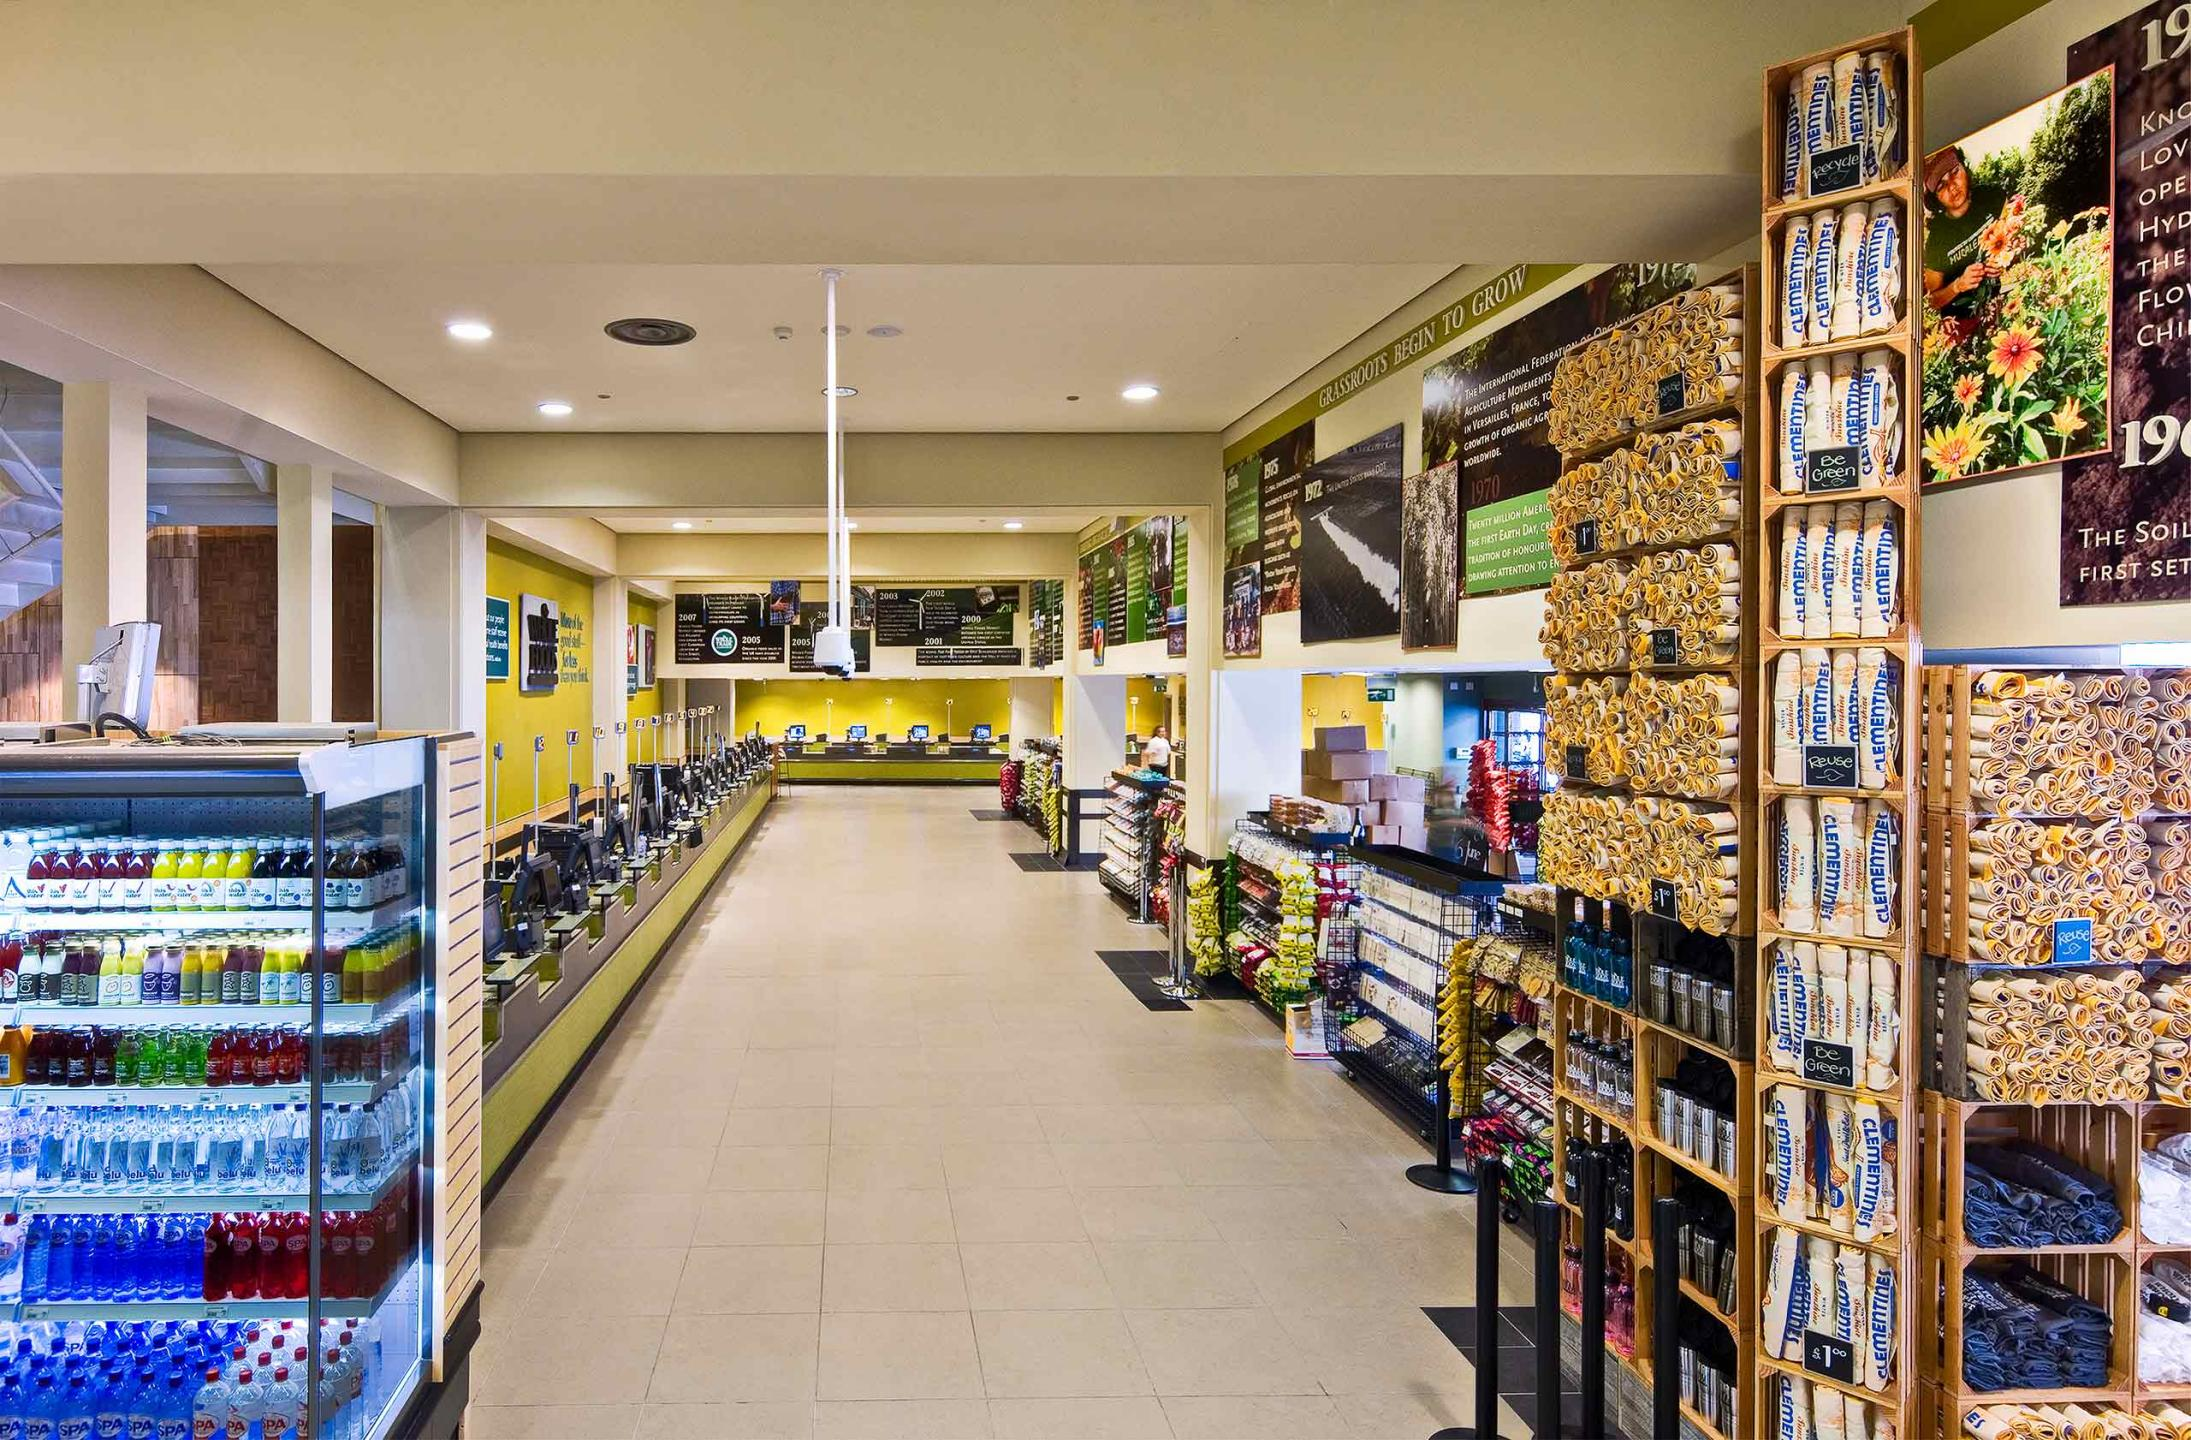 Cashier check out area : Whole Foods Market : New York NY Architectural Photographer | Interior and Exterior